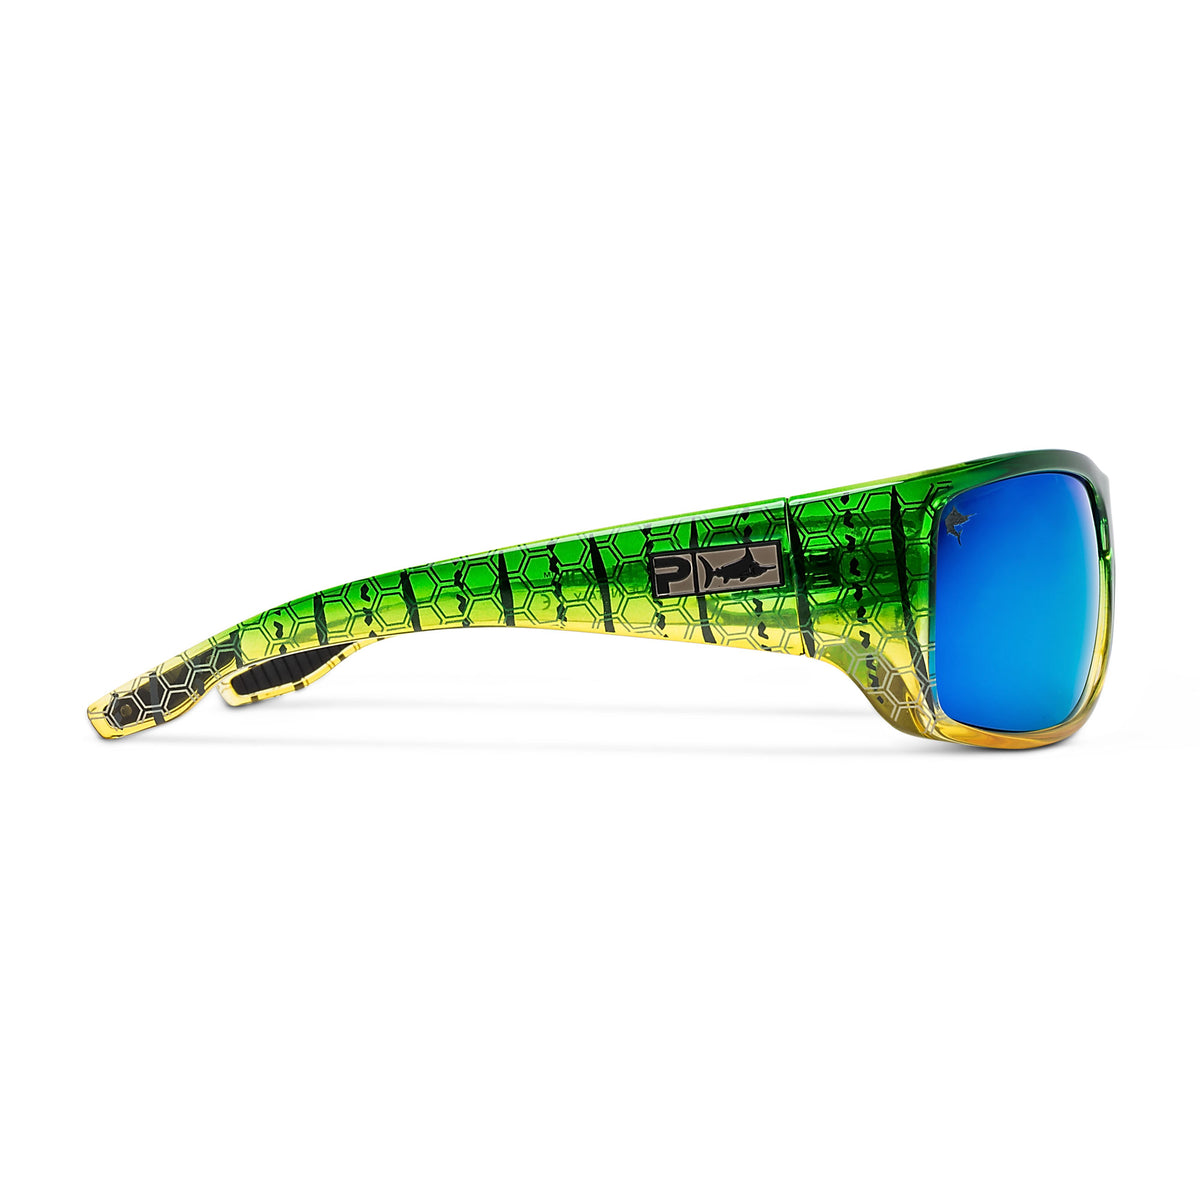 Fish Hook - Polarized Polycarbonate Lens Big Image - 3